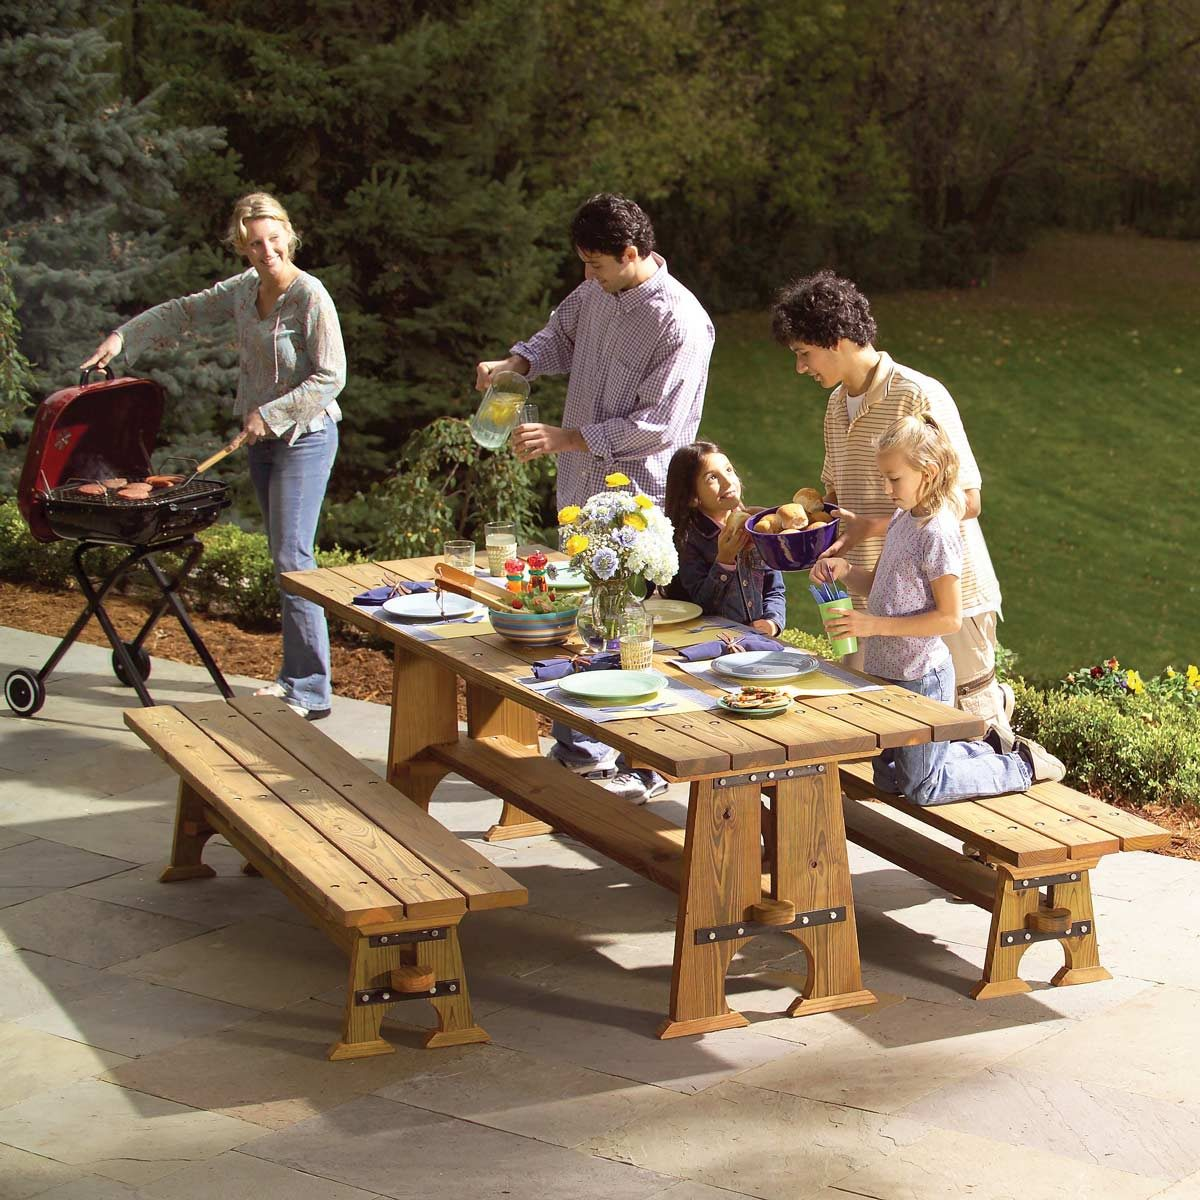 RockSolid Outdoor Picnic Table And Benches Family Handyman The - Treated lumber picnic table